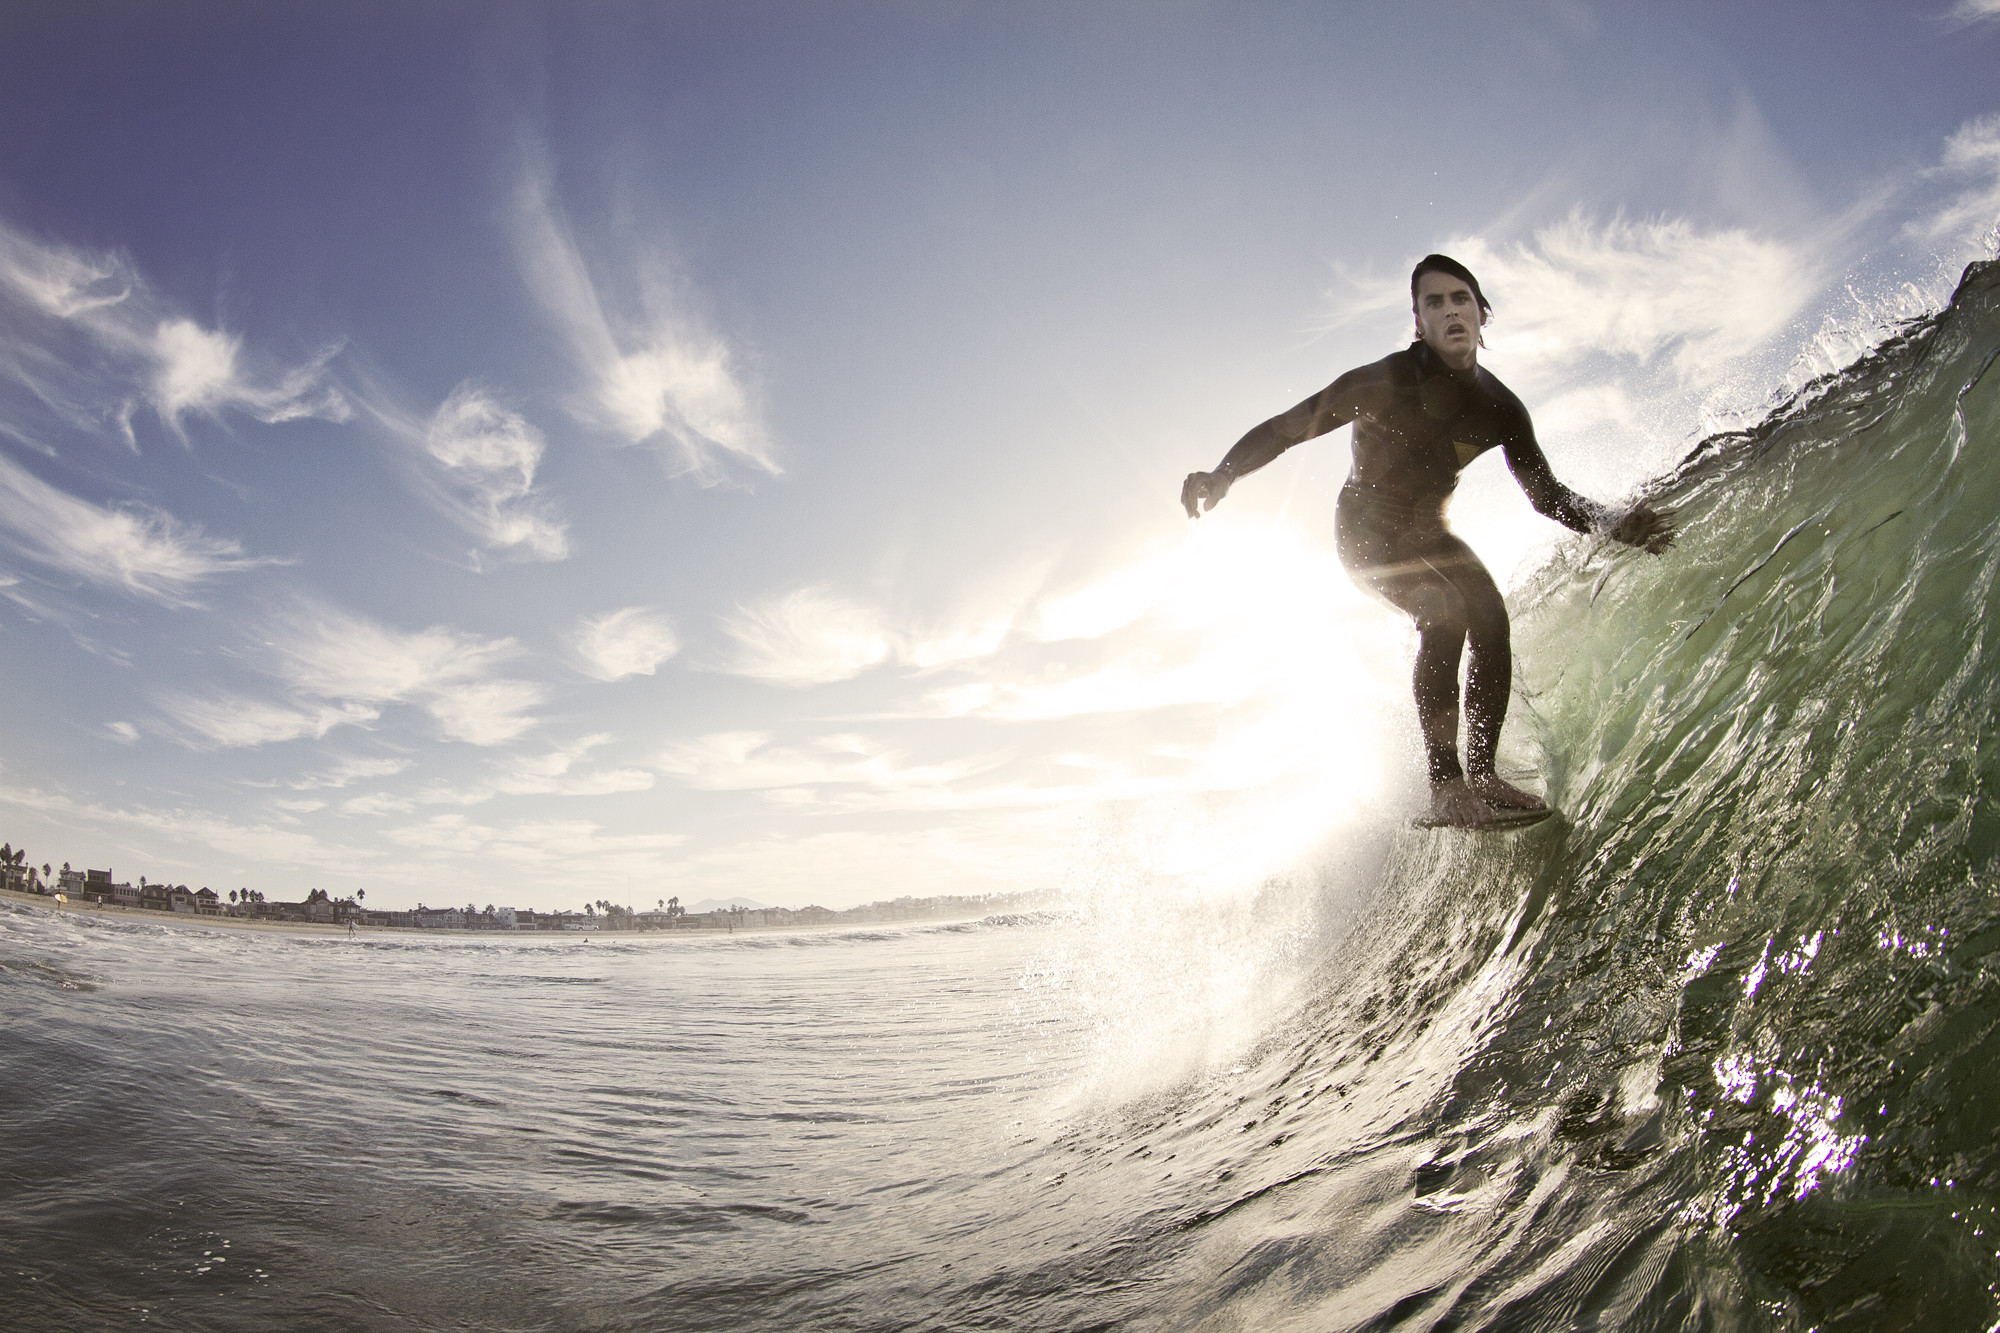 Res: 2000x1333, surf wallpaper hurley scotty nose ride 610x406 Hurley Surf Wallpaper